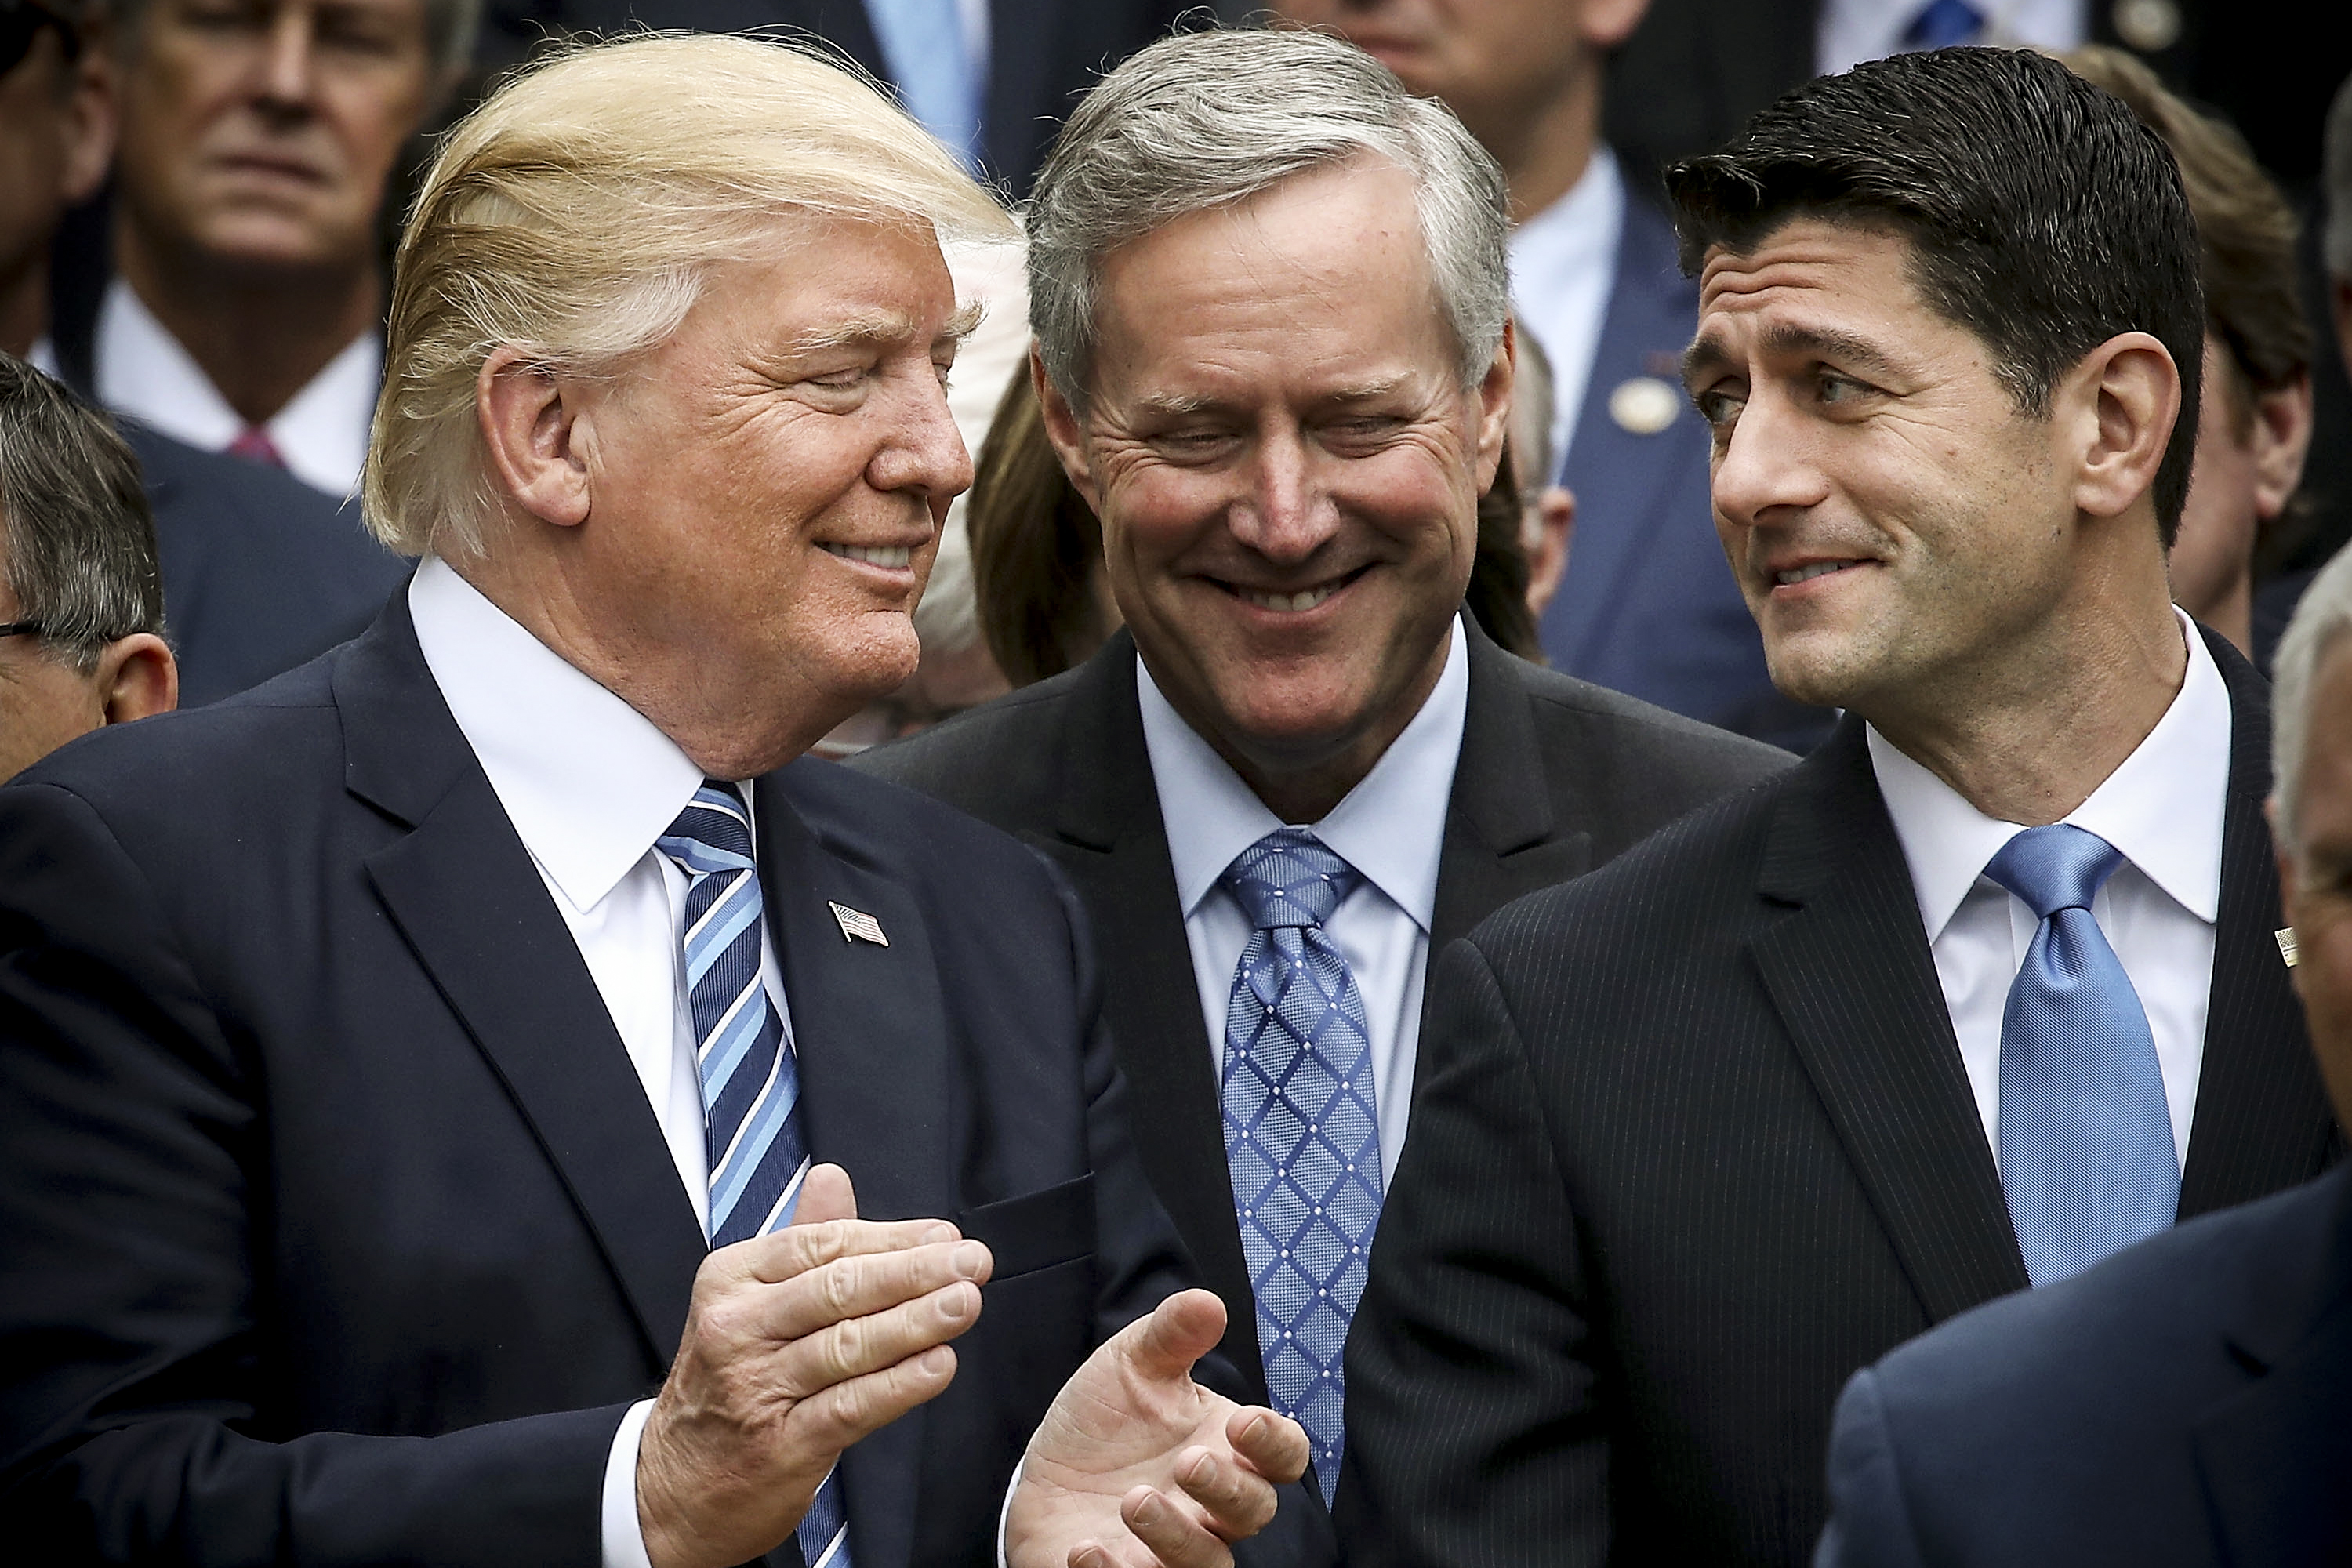 President Trump stands with Paul Ryan (R-WI) and Freedom Caucus Chairman Mark Meadows (R-NC), after Republicans upheld legislation directed during repealing and replacing ObamaCare on May 4, 2017.